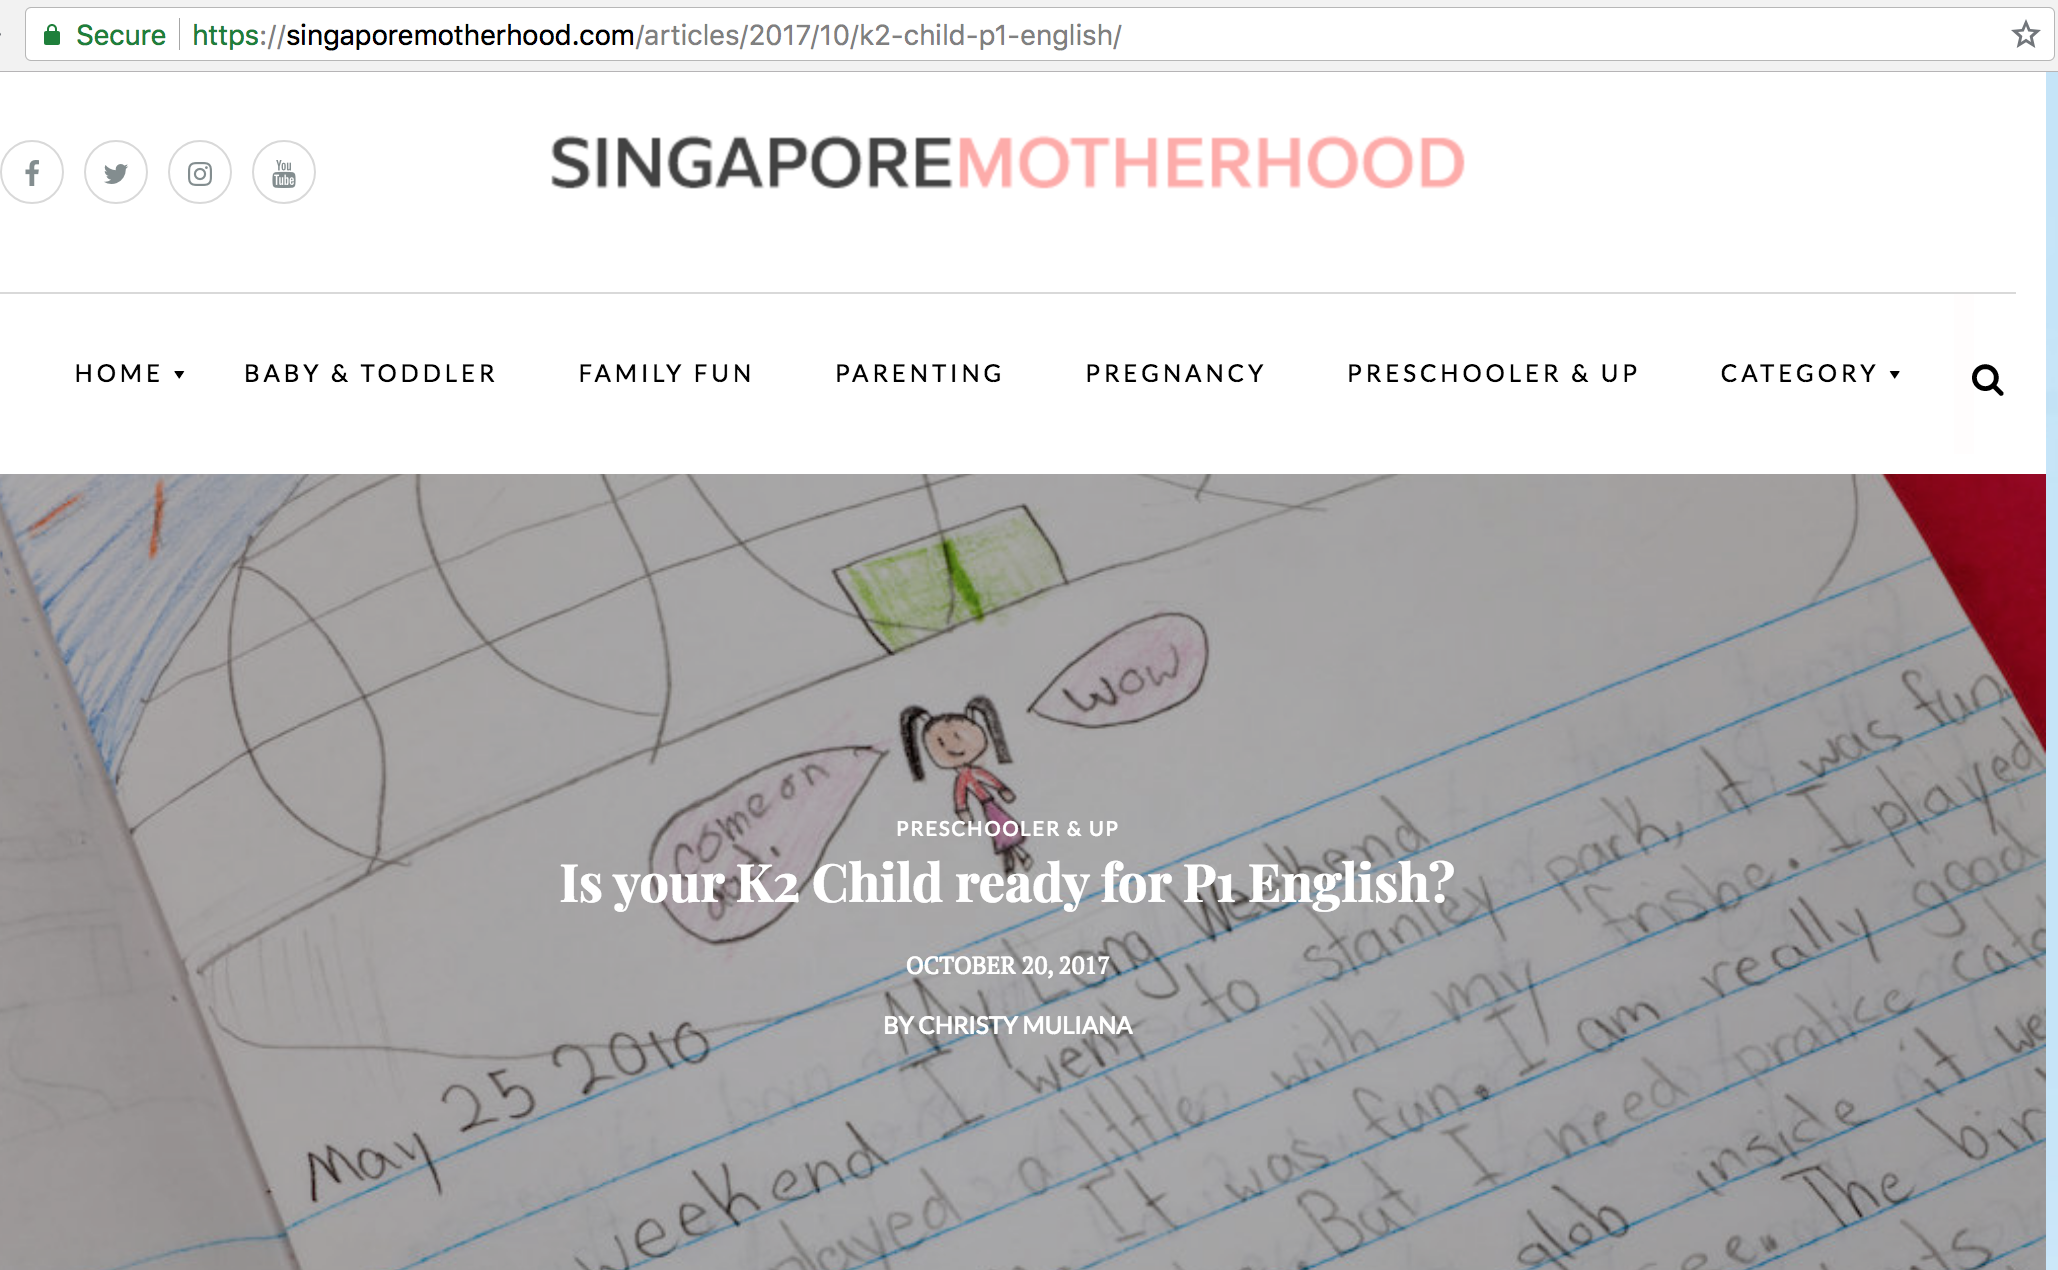 20 October 2018, Singapore mother hood